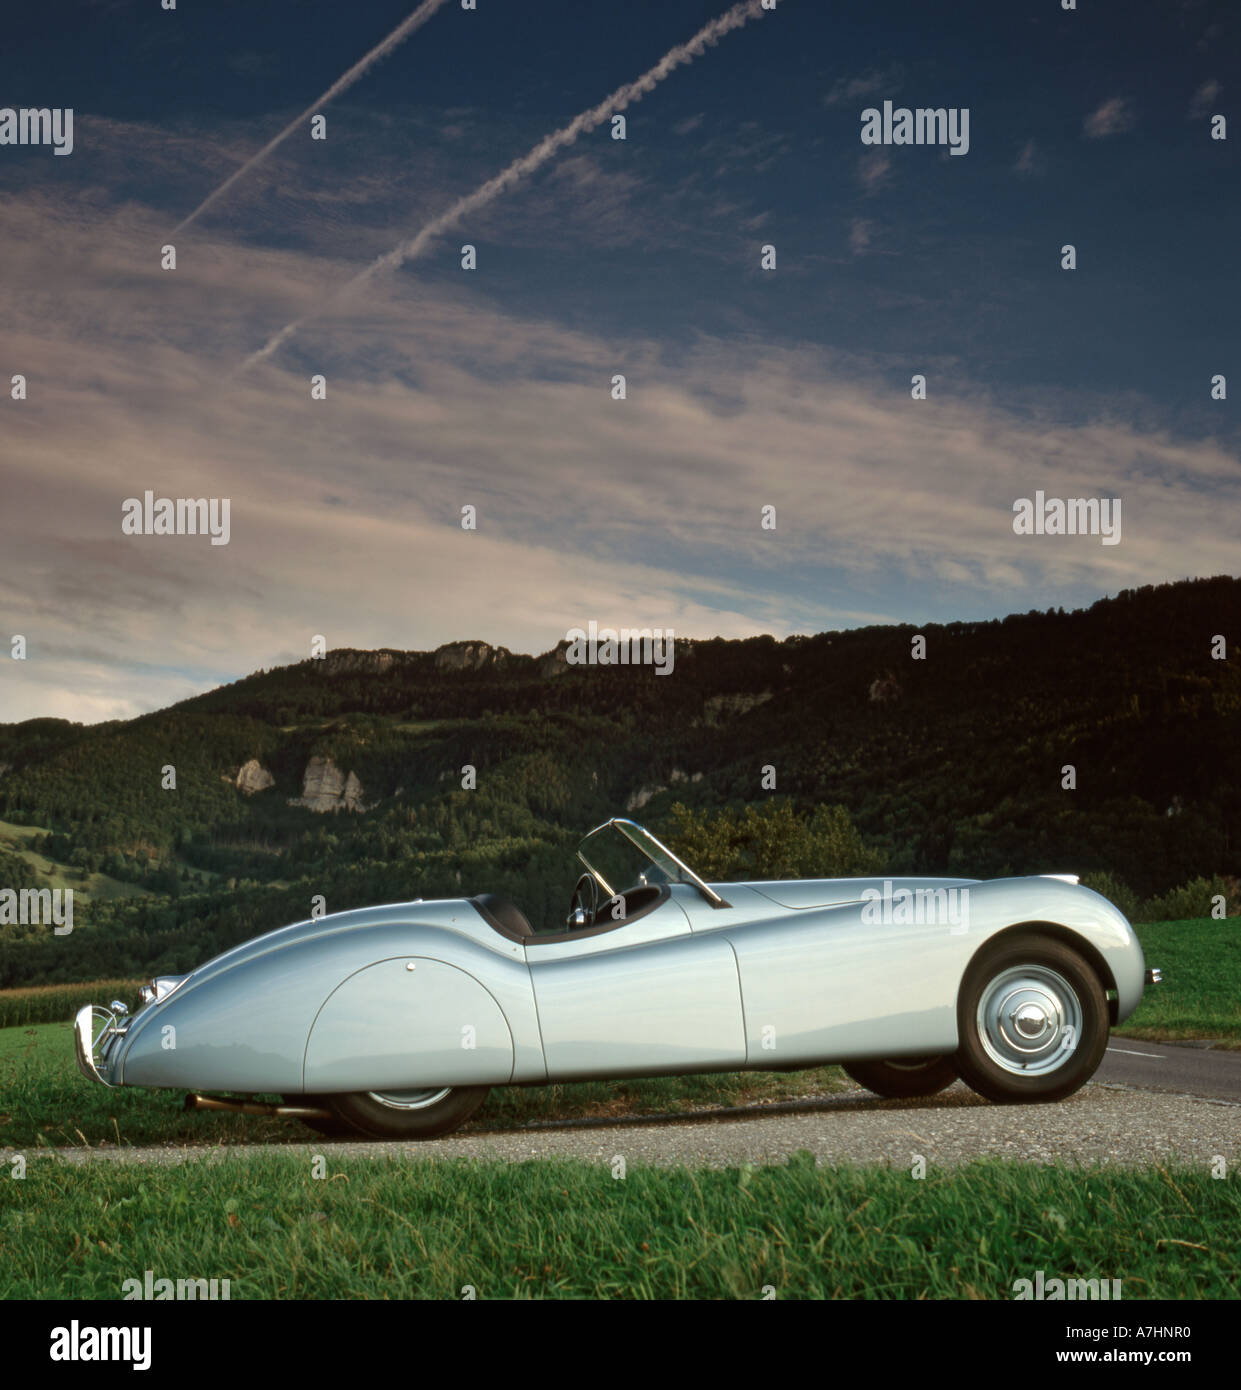 Jaguar Xk 120 Stock Photos Images Alamy 1953 Roadster For Sale Ots 1949 Ally Body In Switzerland Image